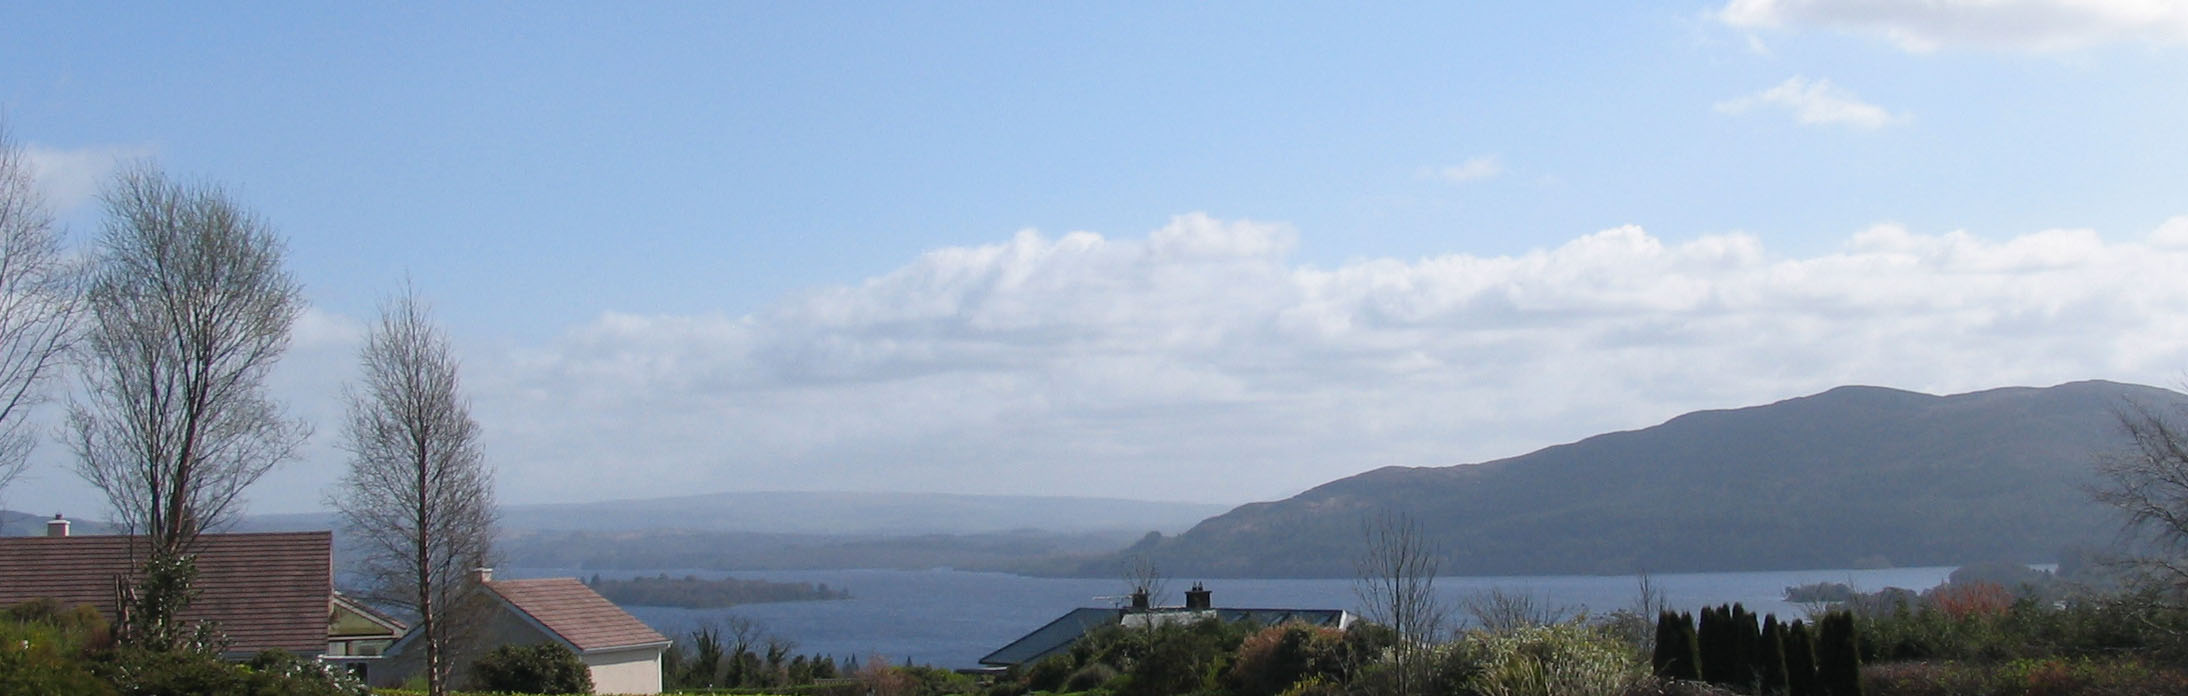 project 1 - view of Lough Gill from site